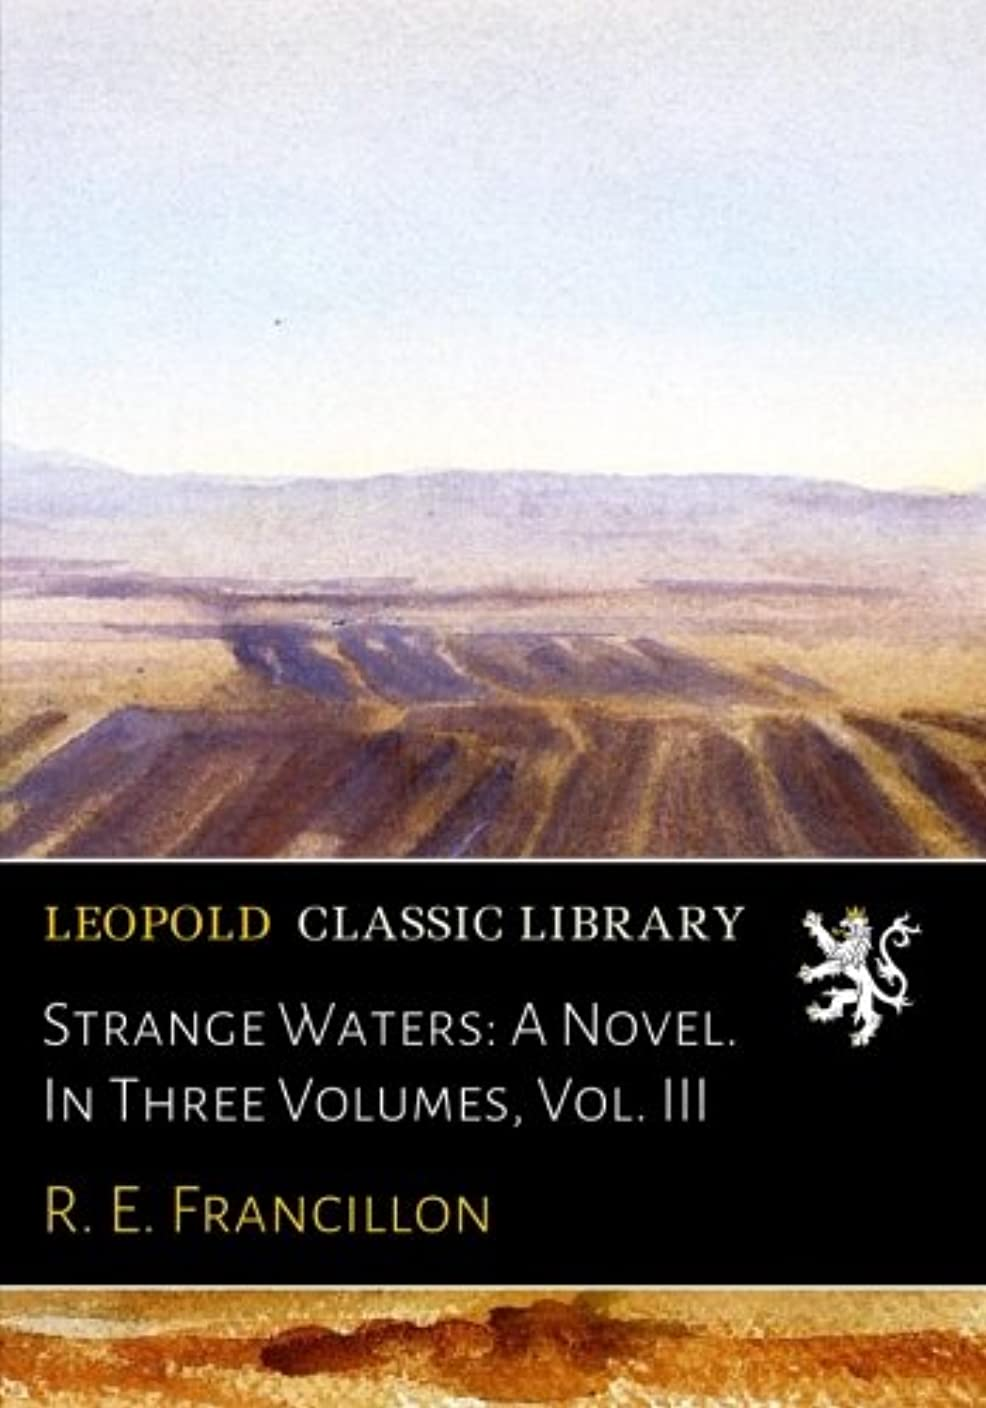 マットレス投げるバスケットボールStrange Waters: A Novel. In Three Volumes, Vol. III